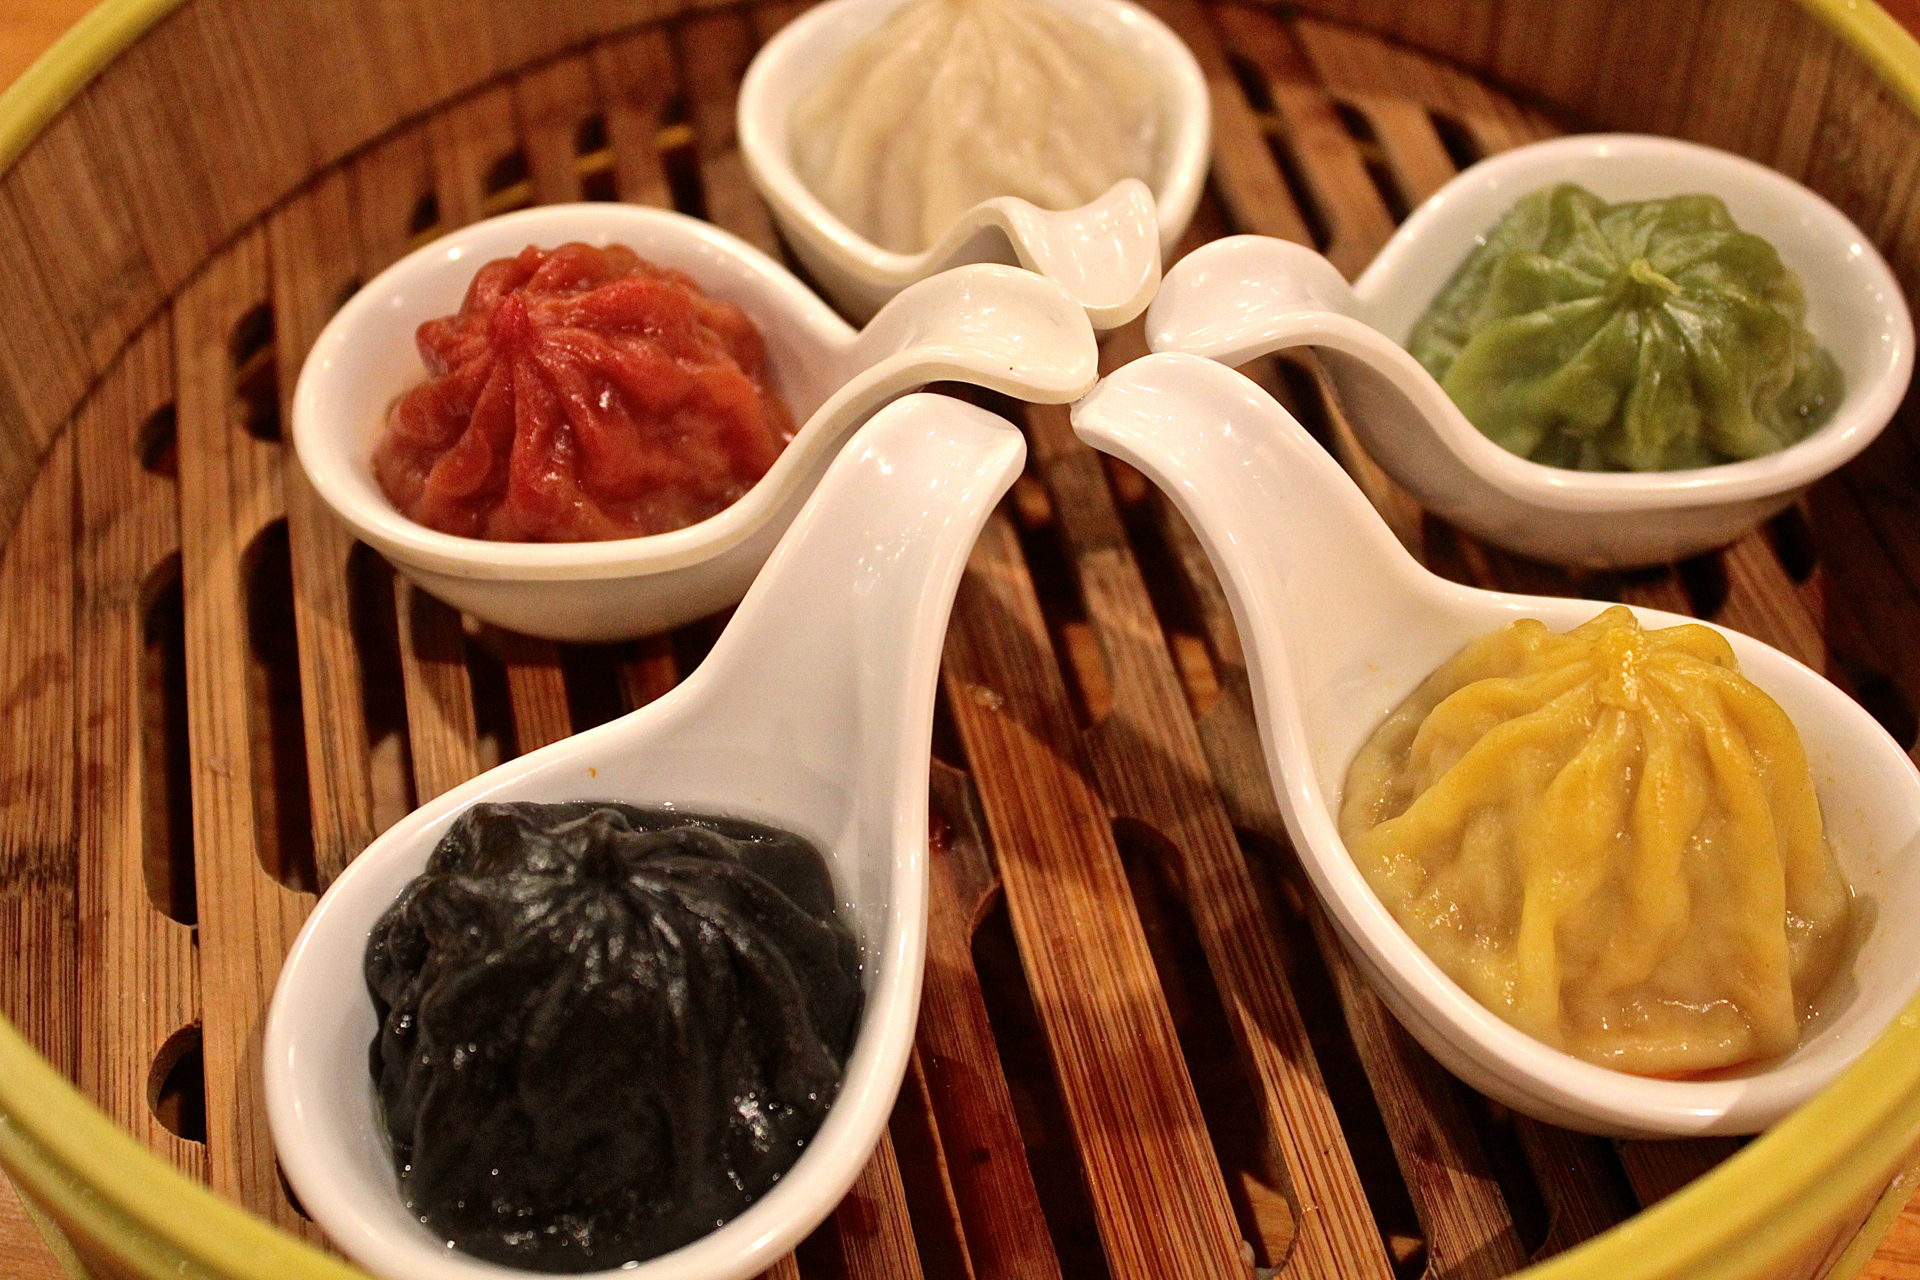 The Shanghai dumpling sampler at Koi Palace.